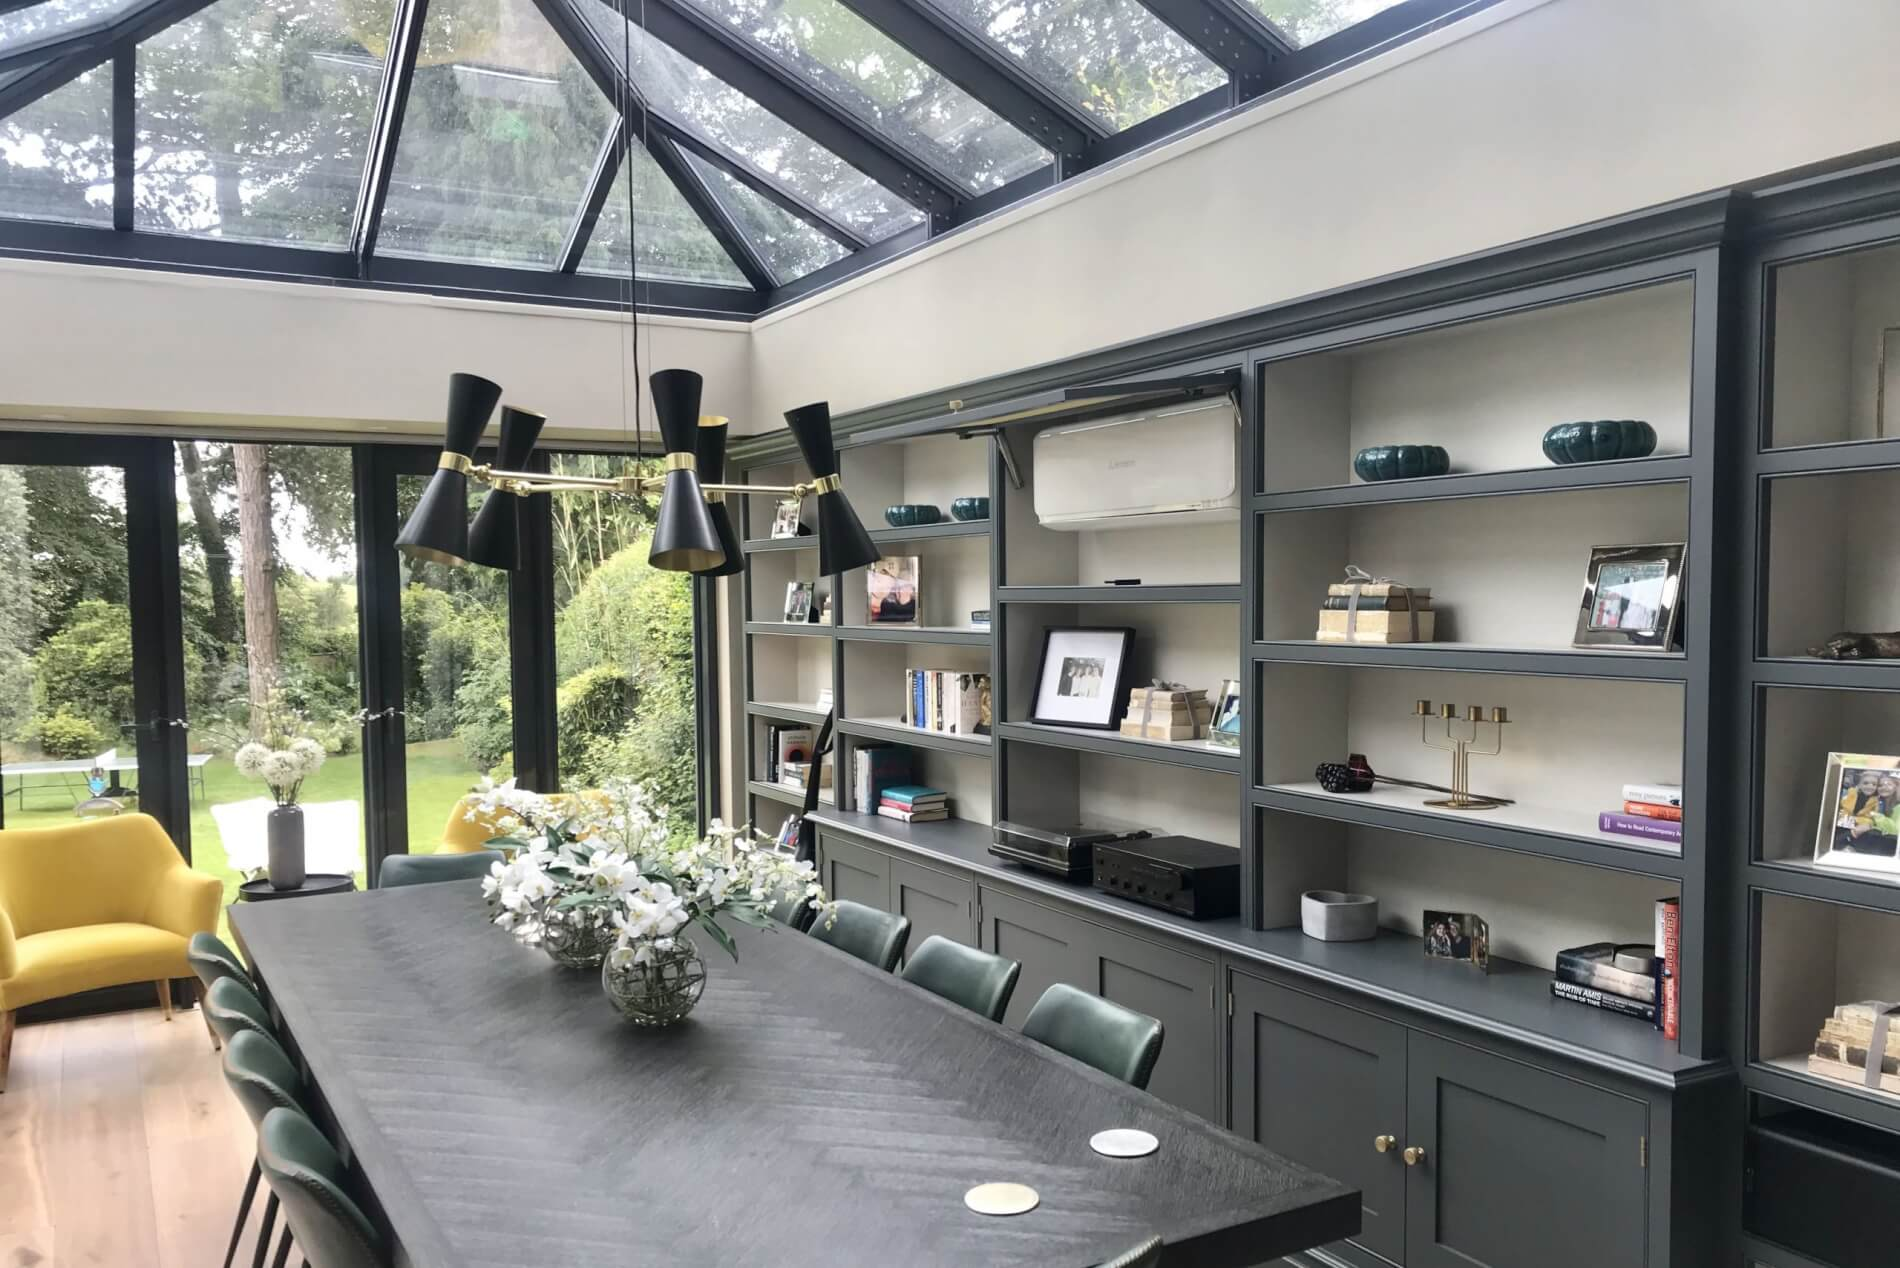 Conservatory Accessory Ideas - Shelving & Bookcases